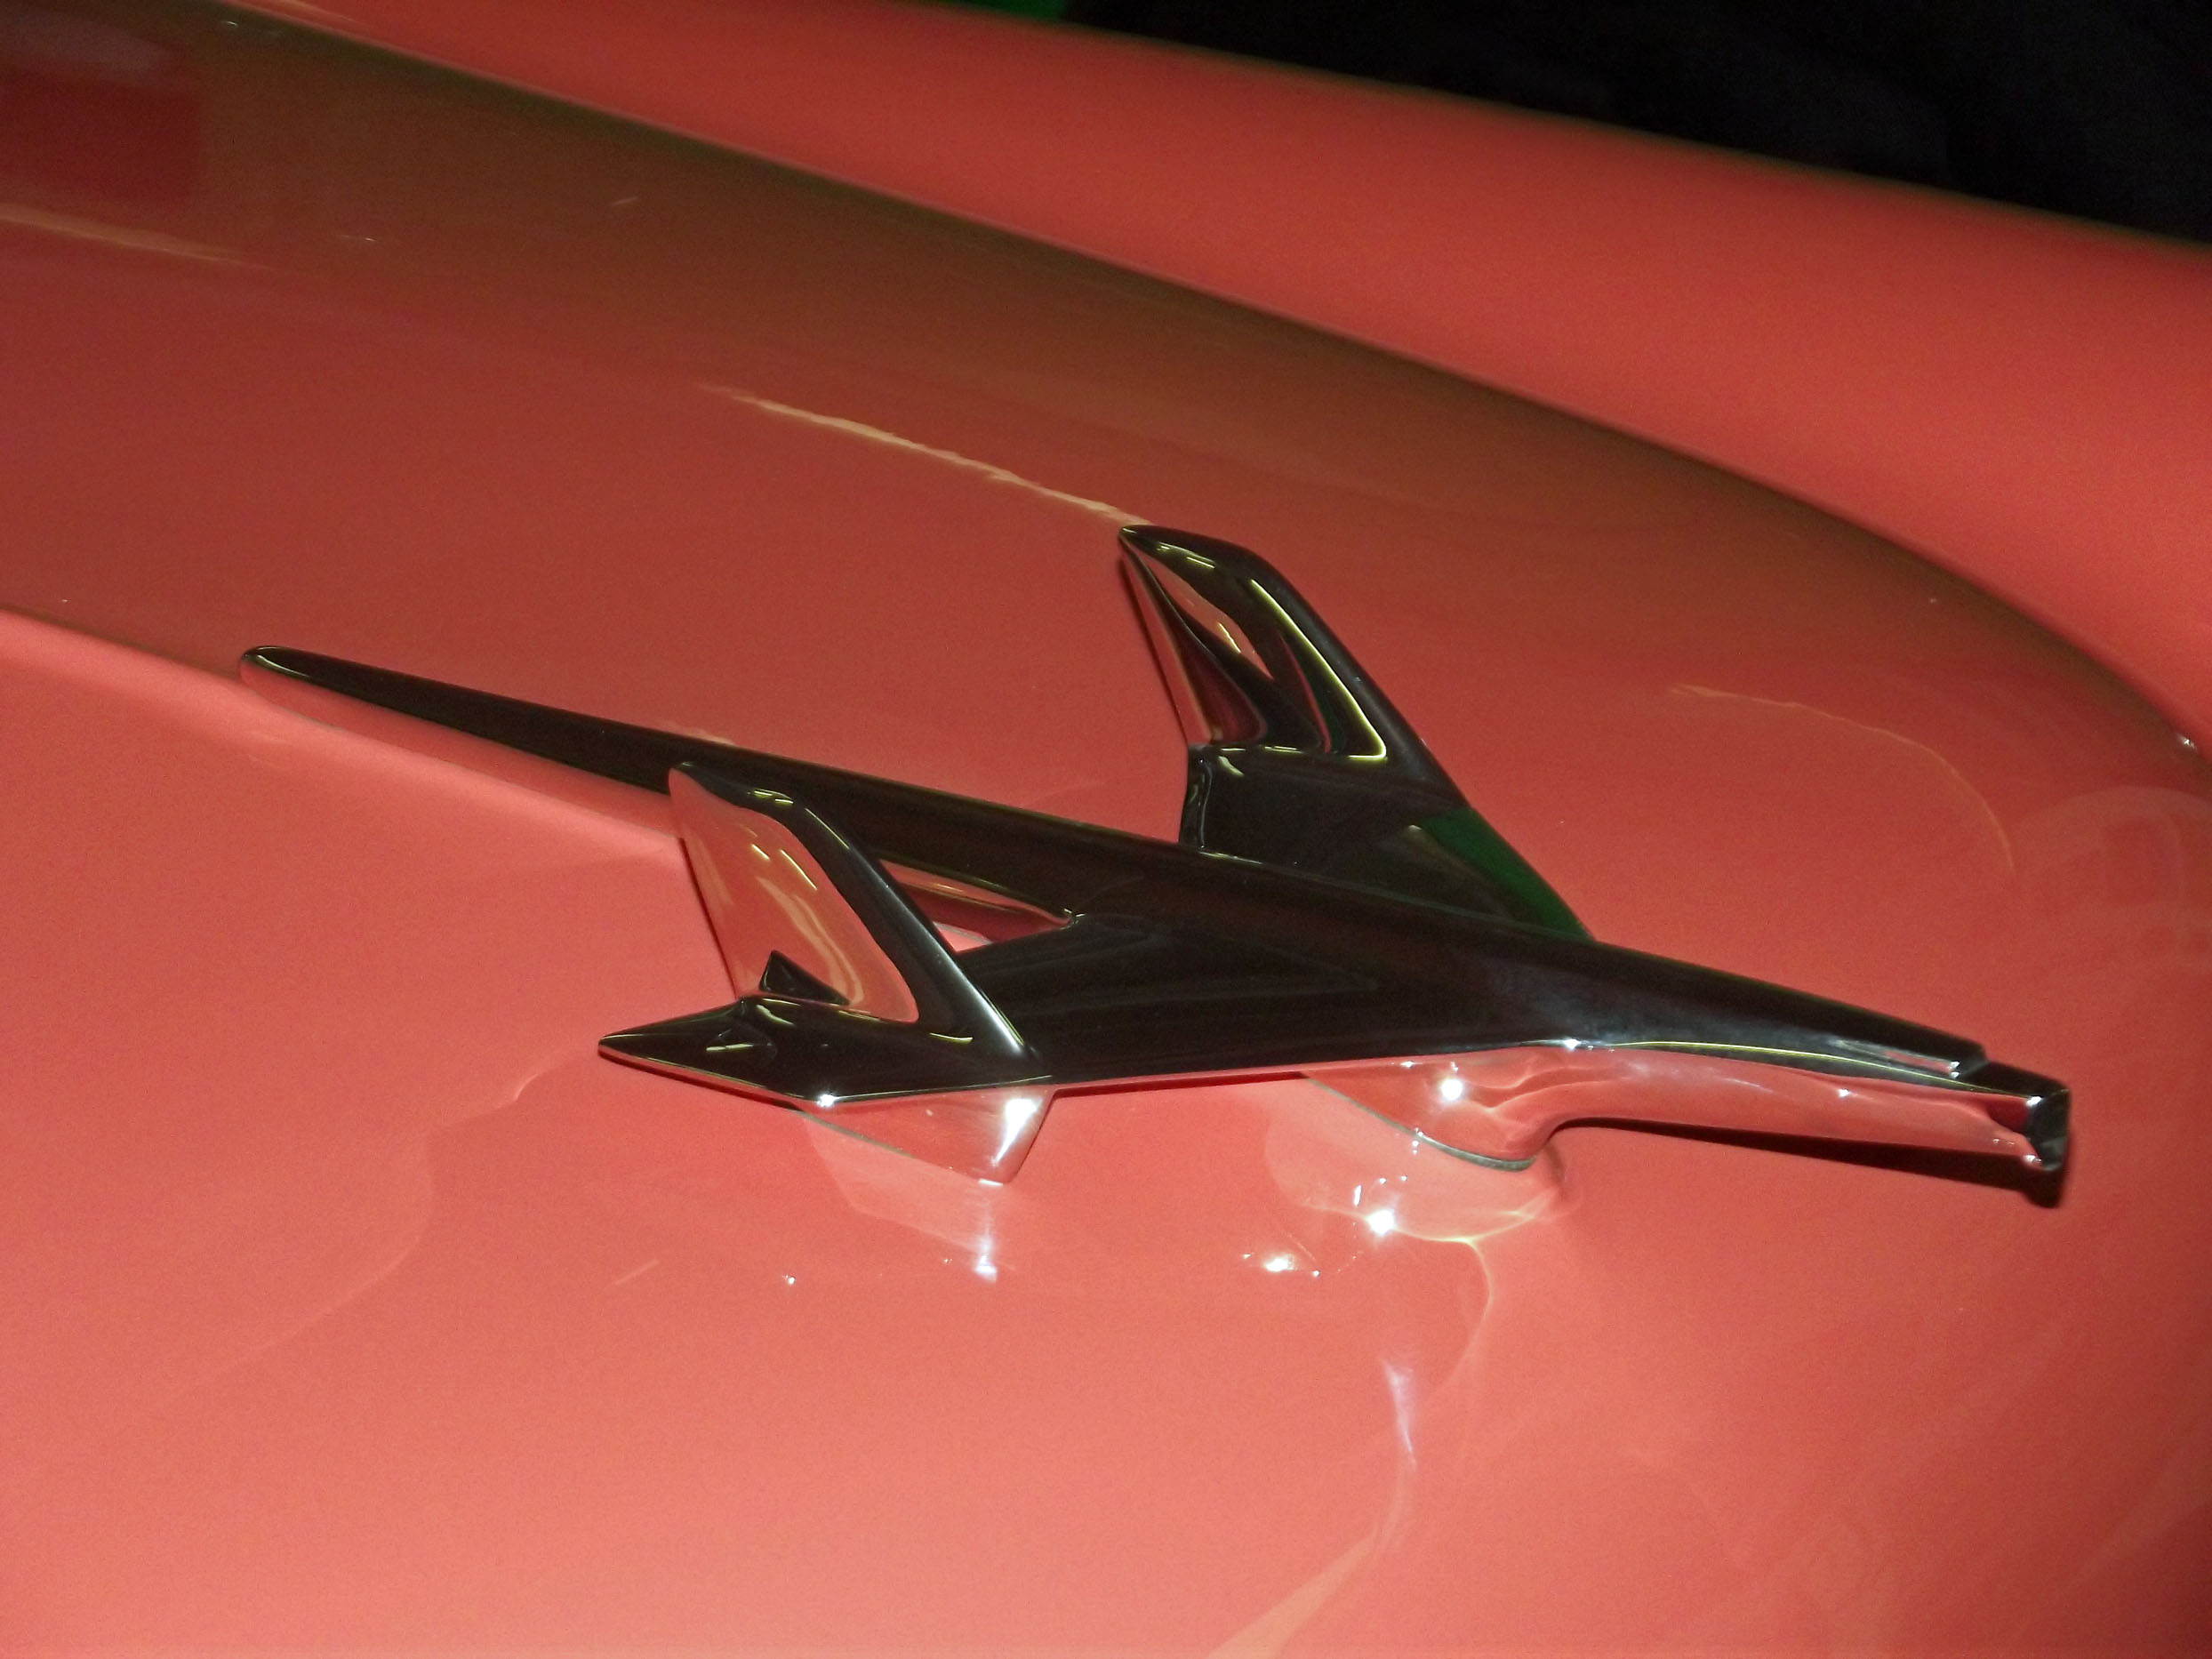 Detail of salmon pink car with silver trim